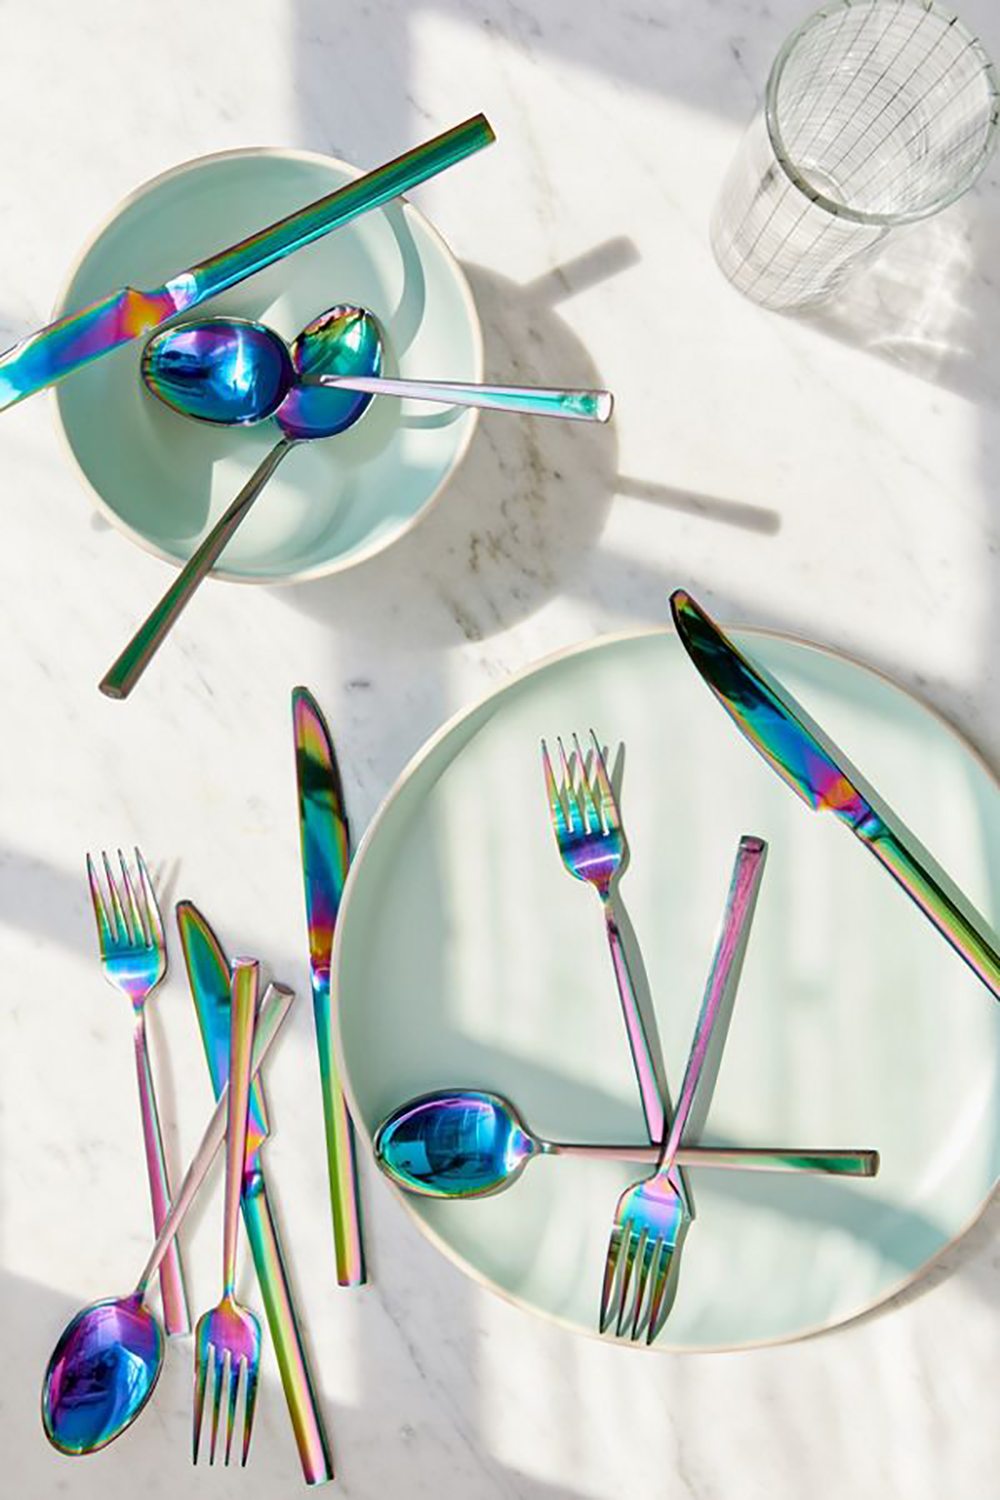 12-Piece Electroplated Flatware Set: Urban Outfitters Home Sale